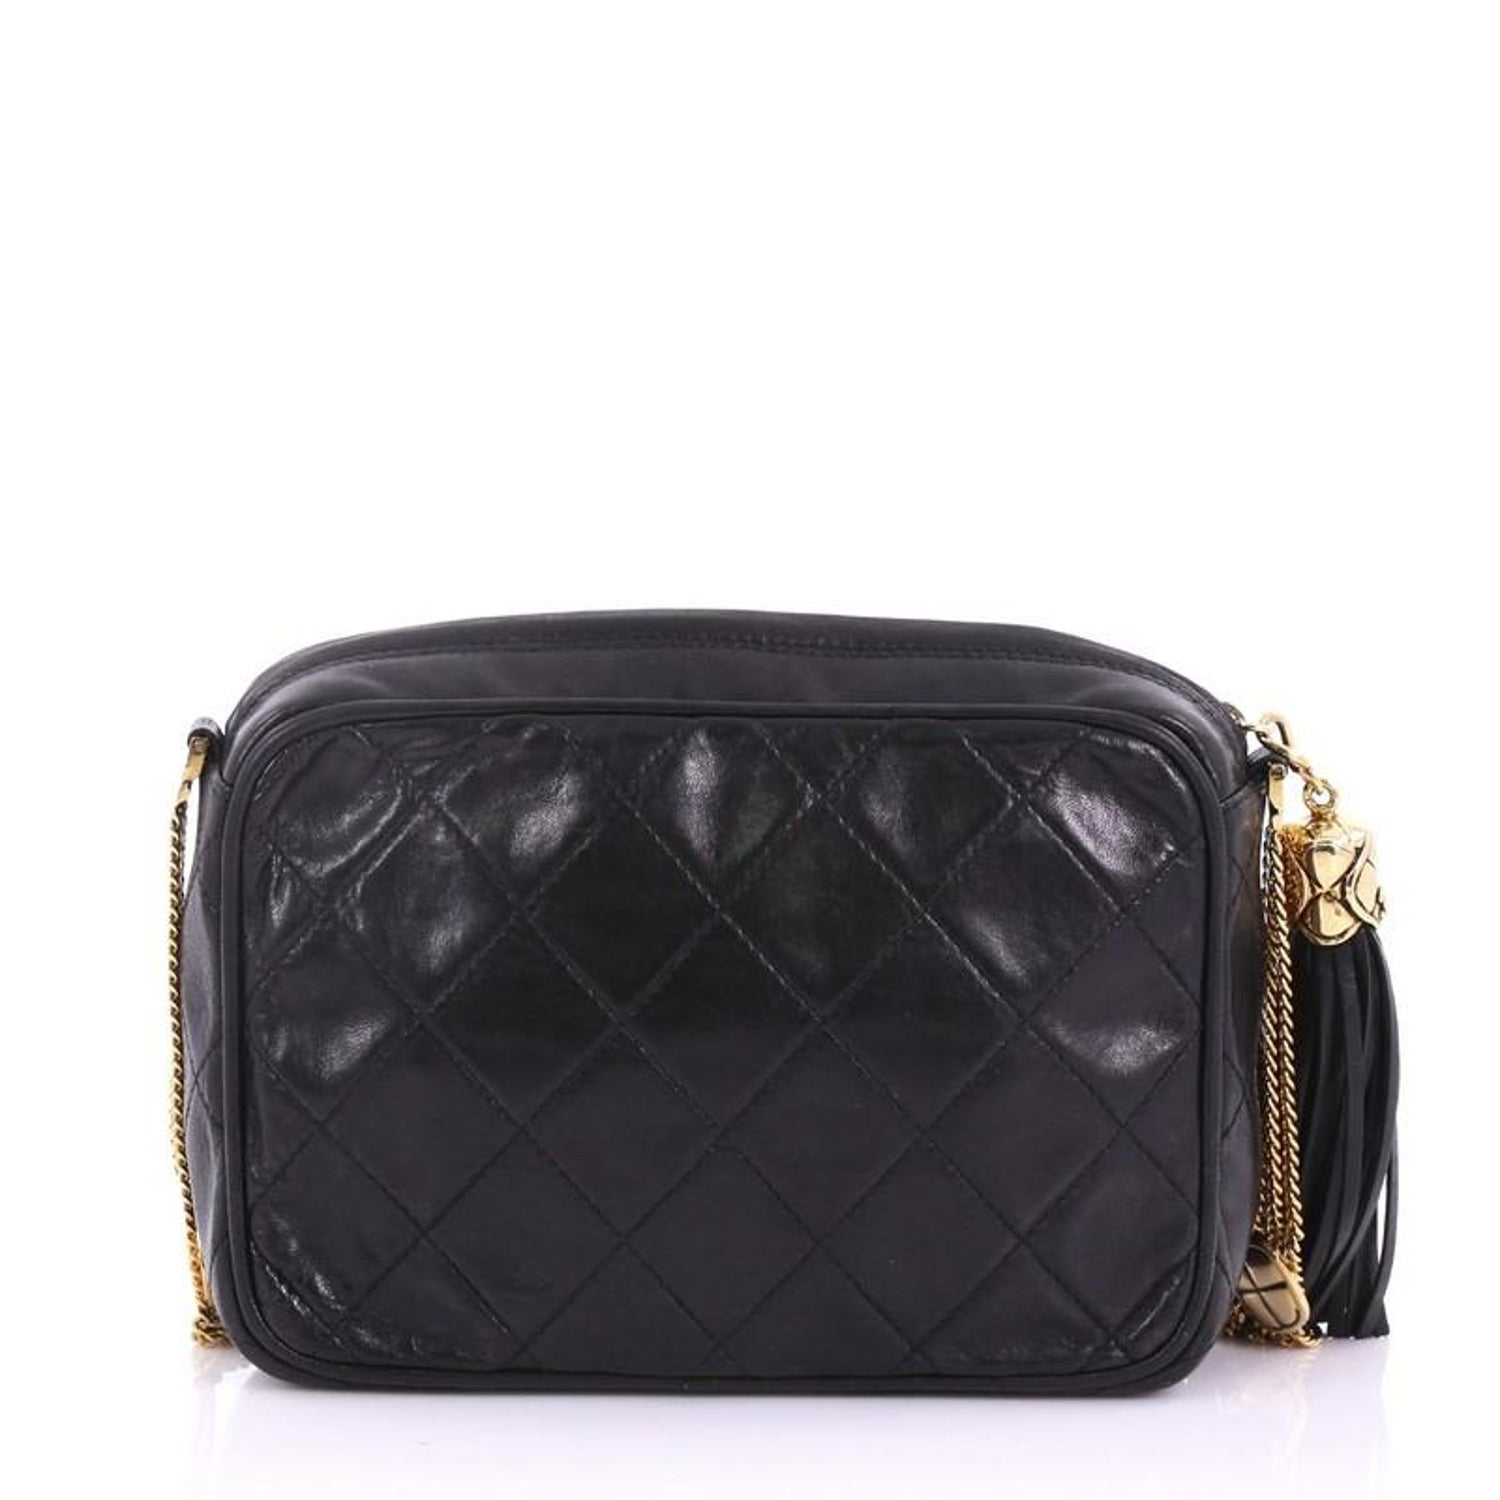 50f456cf81a4 Chanel Vintage Front Pocket Camera Bag Quilted Leather Small For Sale at  1stdibs